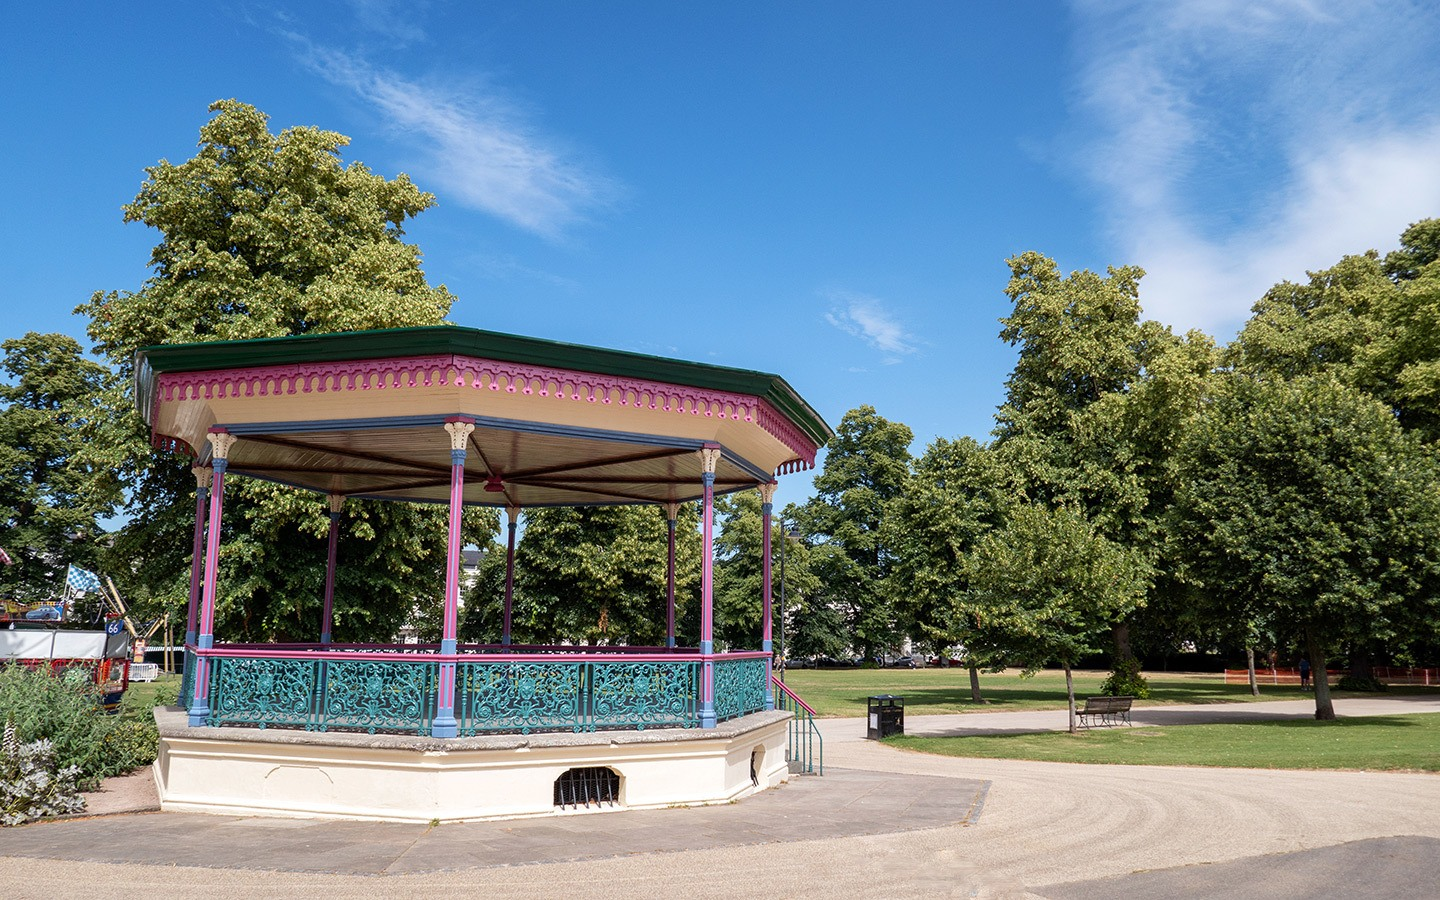 The bandstand in Montpellier Gardens, Cheltenham